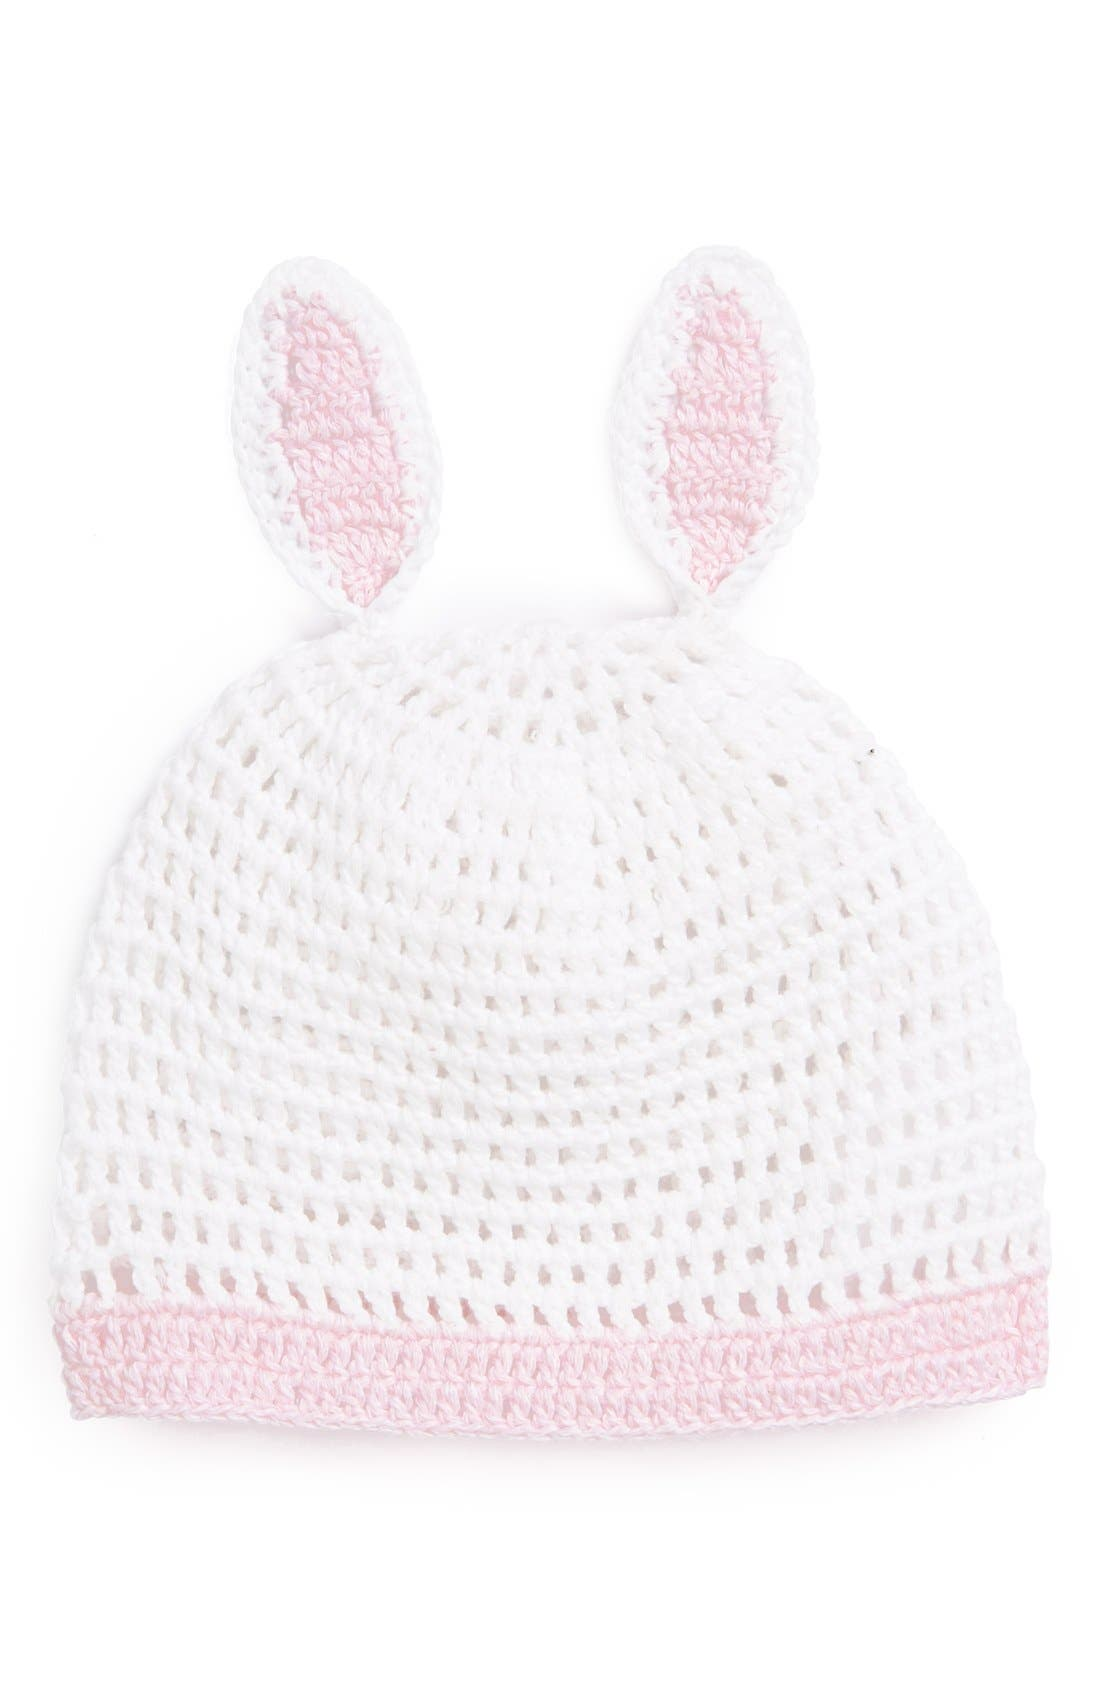 Main Image - Mud Pie 'Bunny' Crochet Hat (Baby Girls)